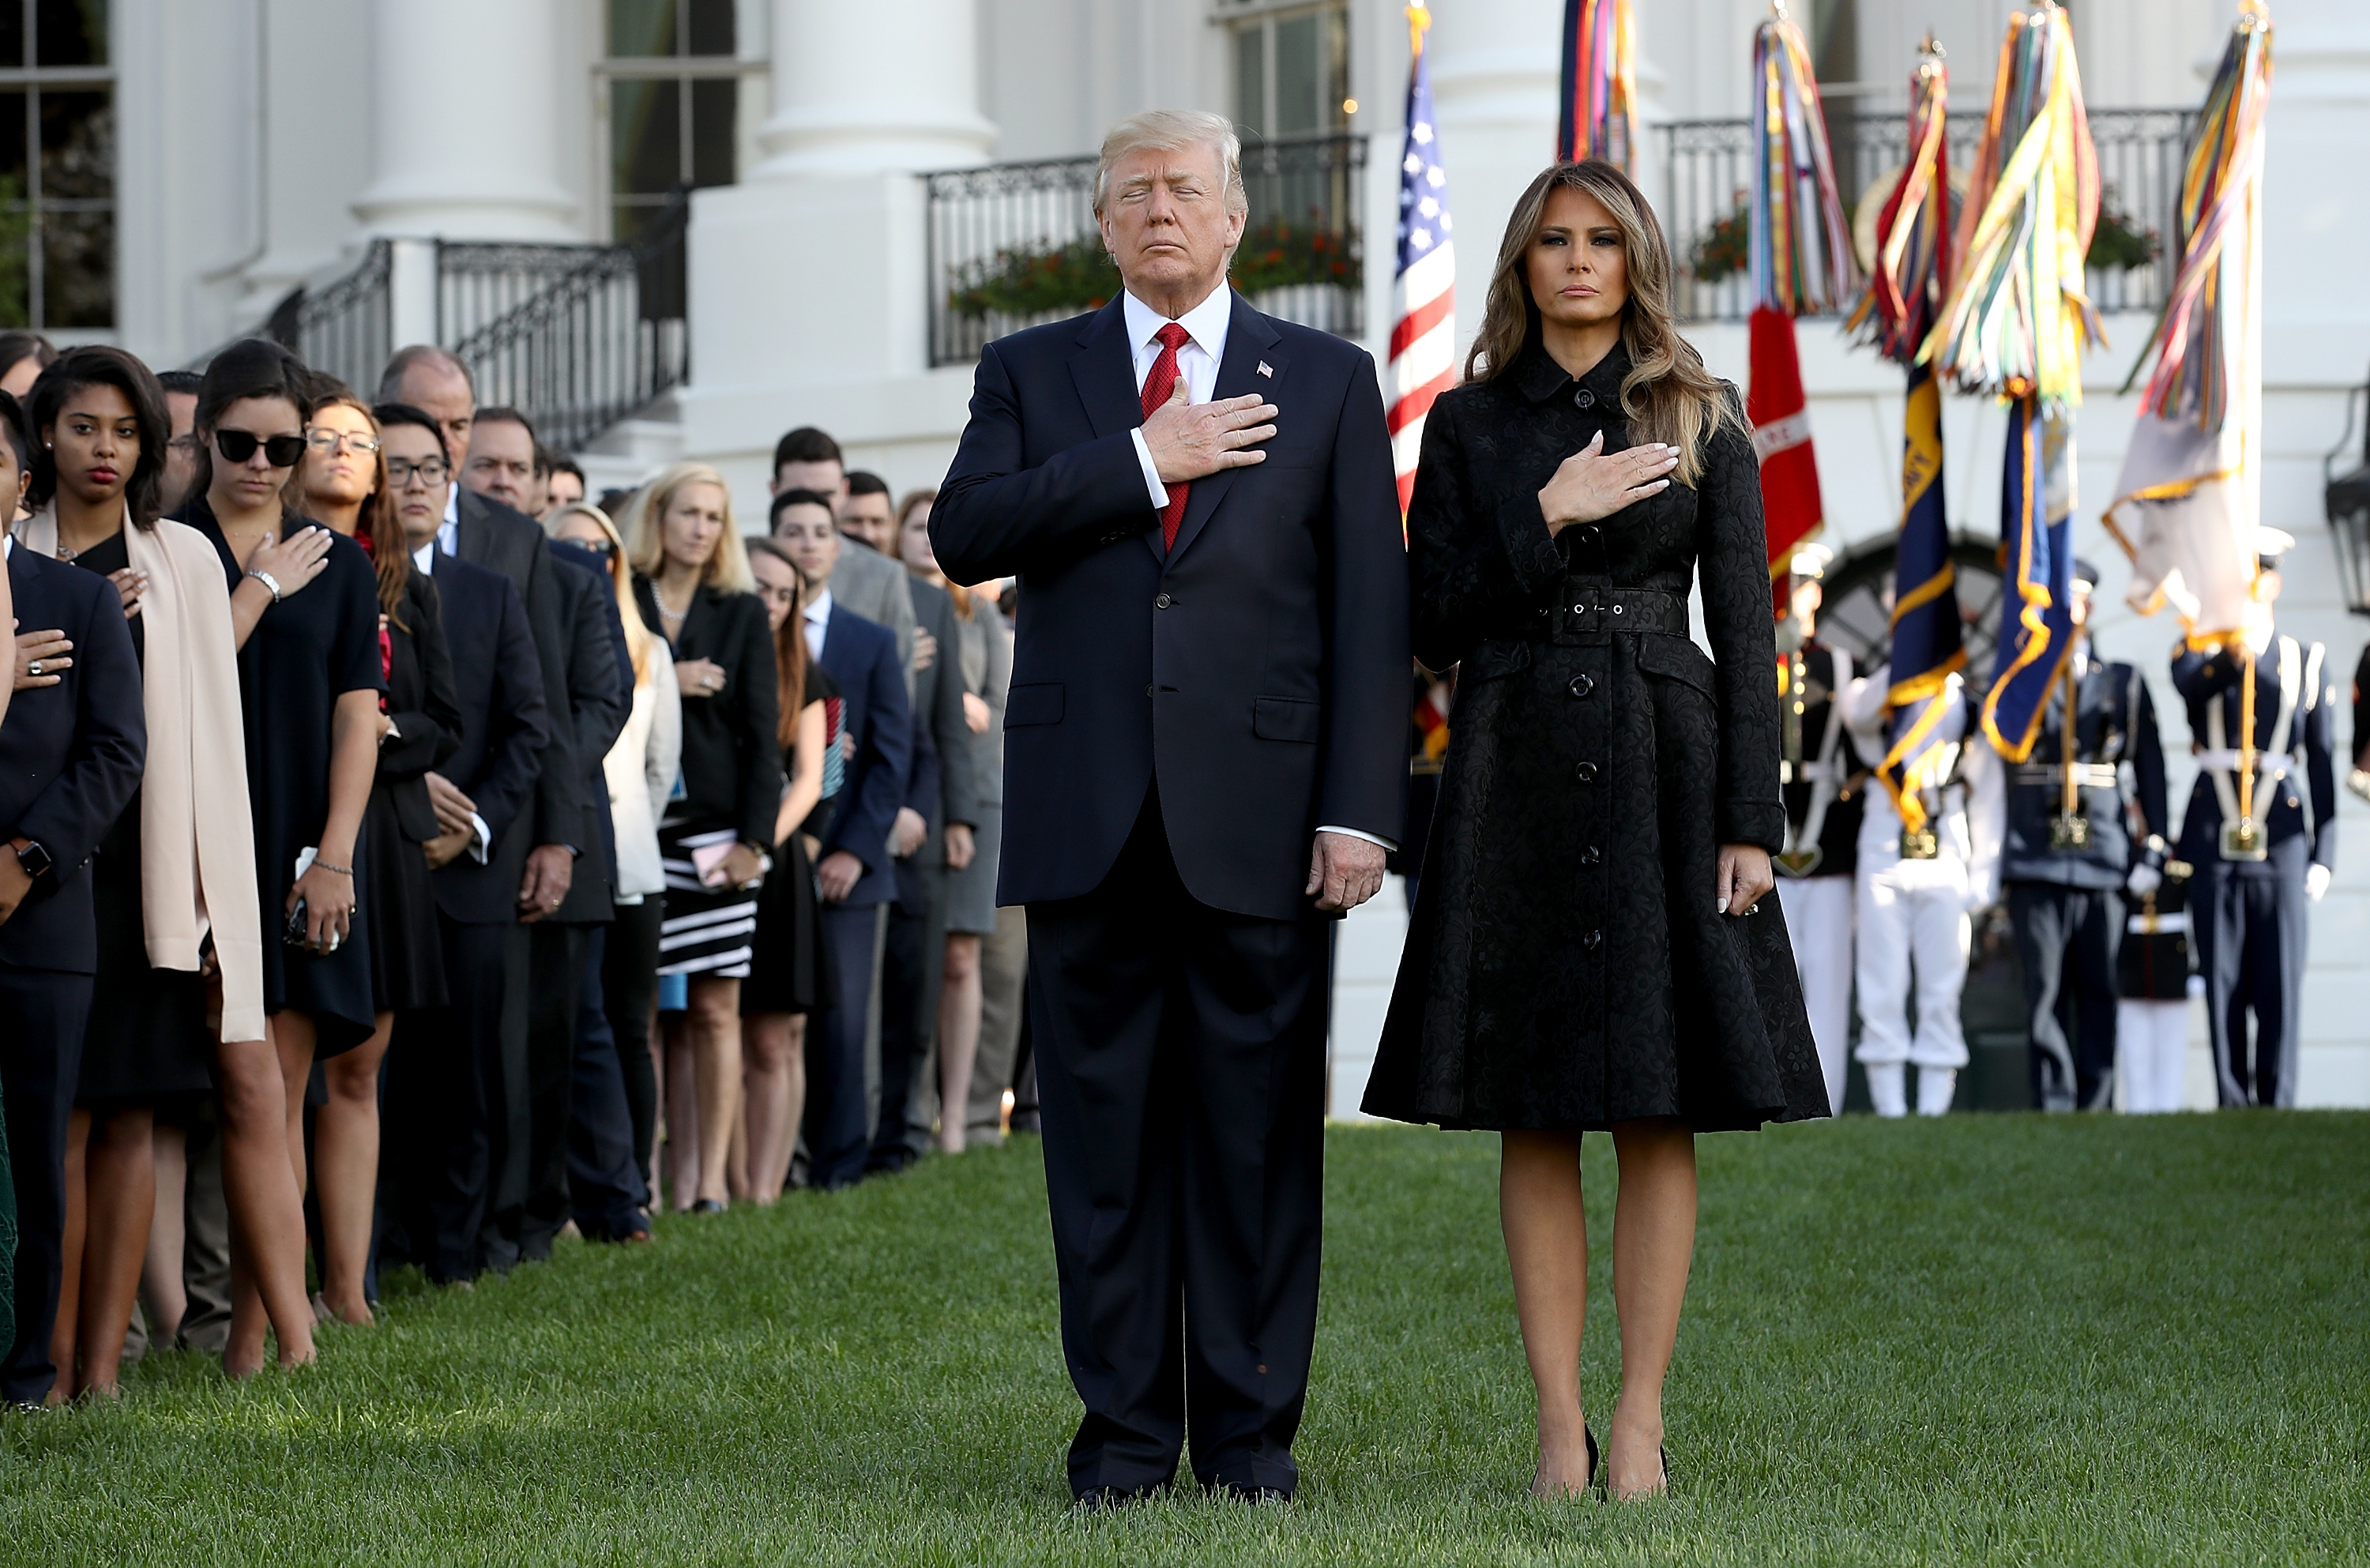 First lady Melania Trump, wear a black, long-sleeved coatdress by Michael Kors during a ceremony marking the September 11 attacks Sept.11, 2017 in Washington, D.C.